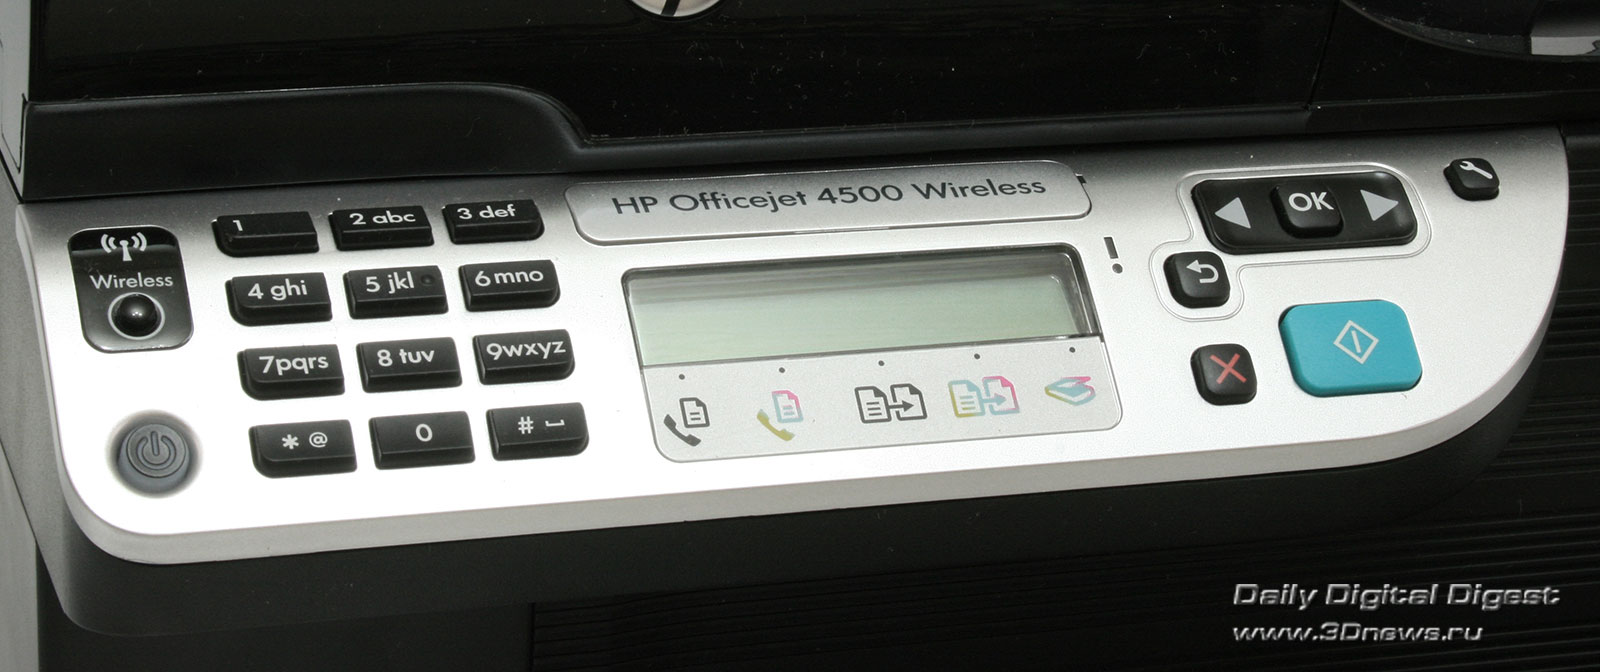 Hp Officejet 4500 G510m Driver